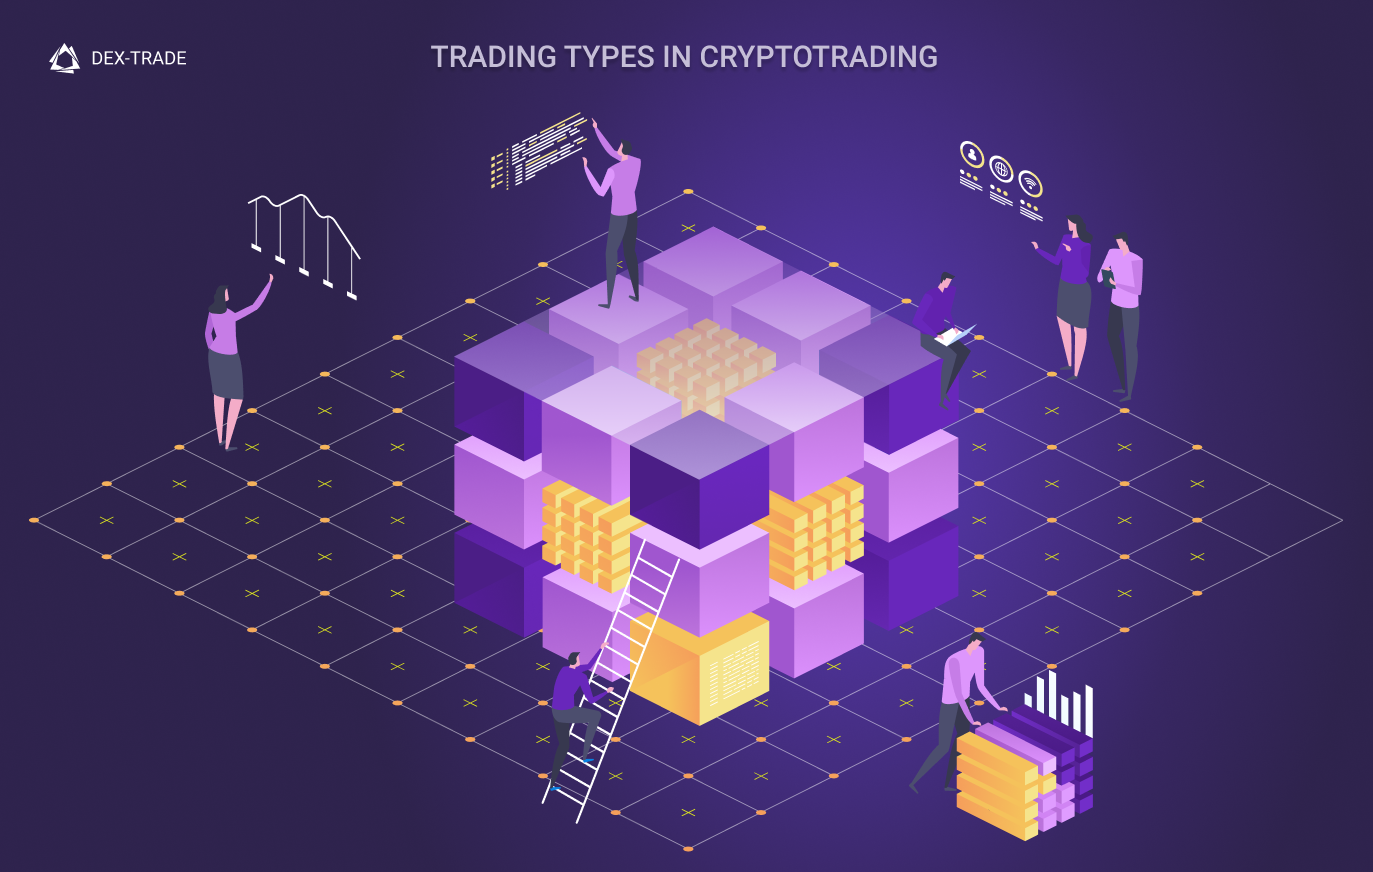 TRADING TYPES IN CRYPTOTRADING: MARKET, LIMIT AND STOP-LIMIT